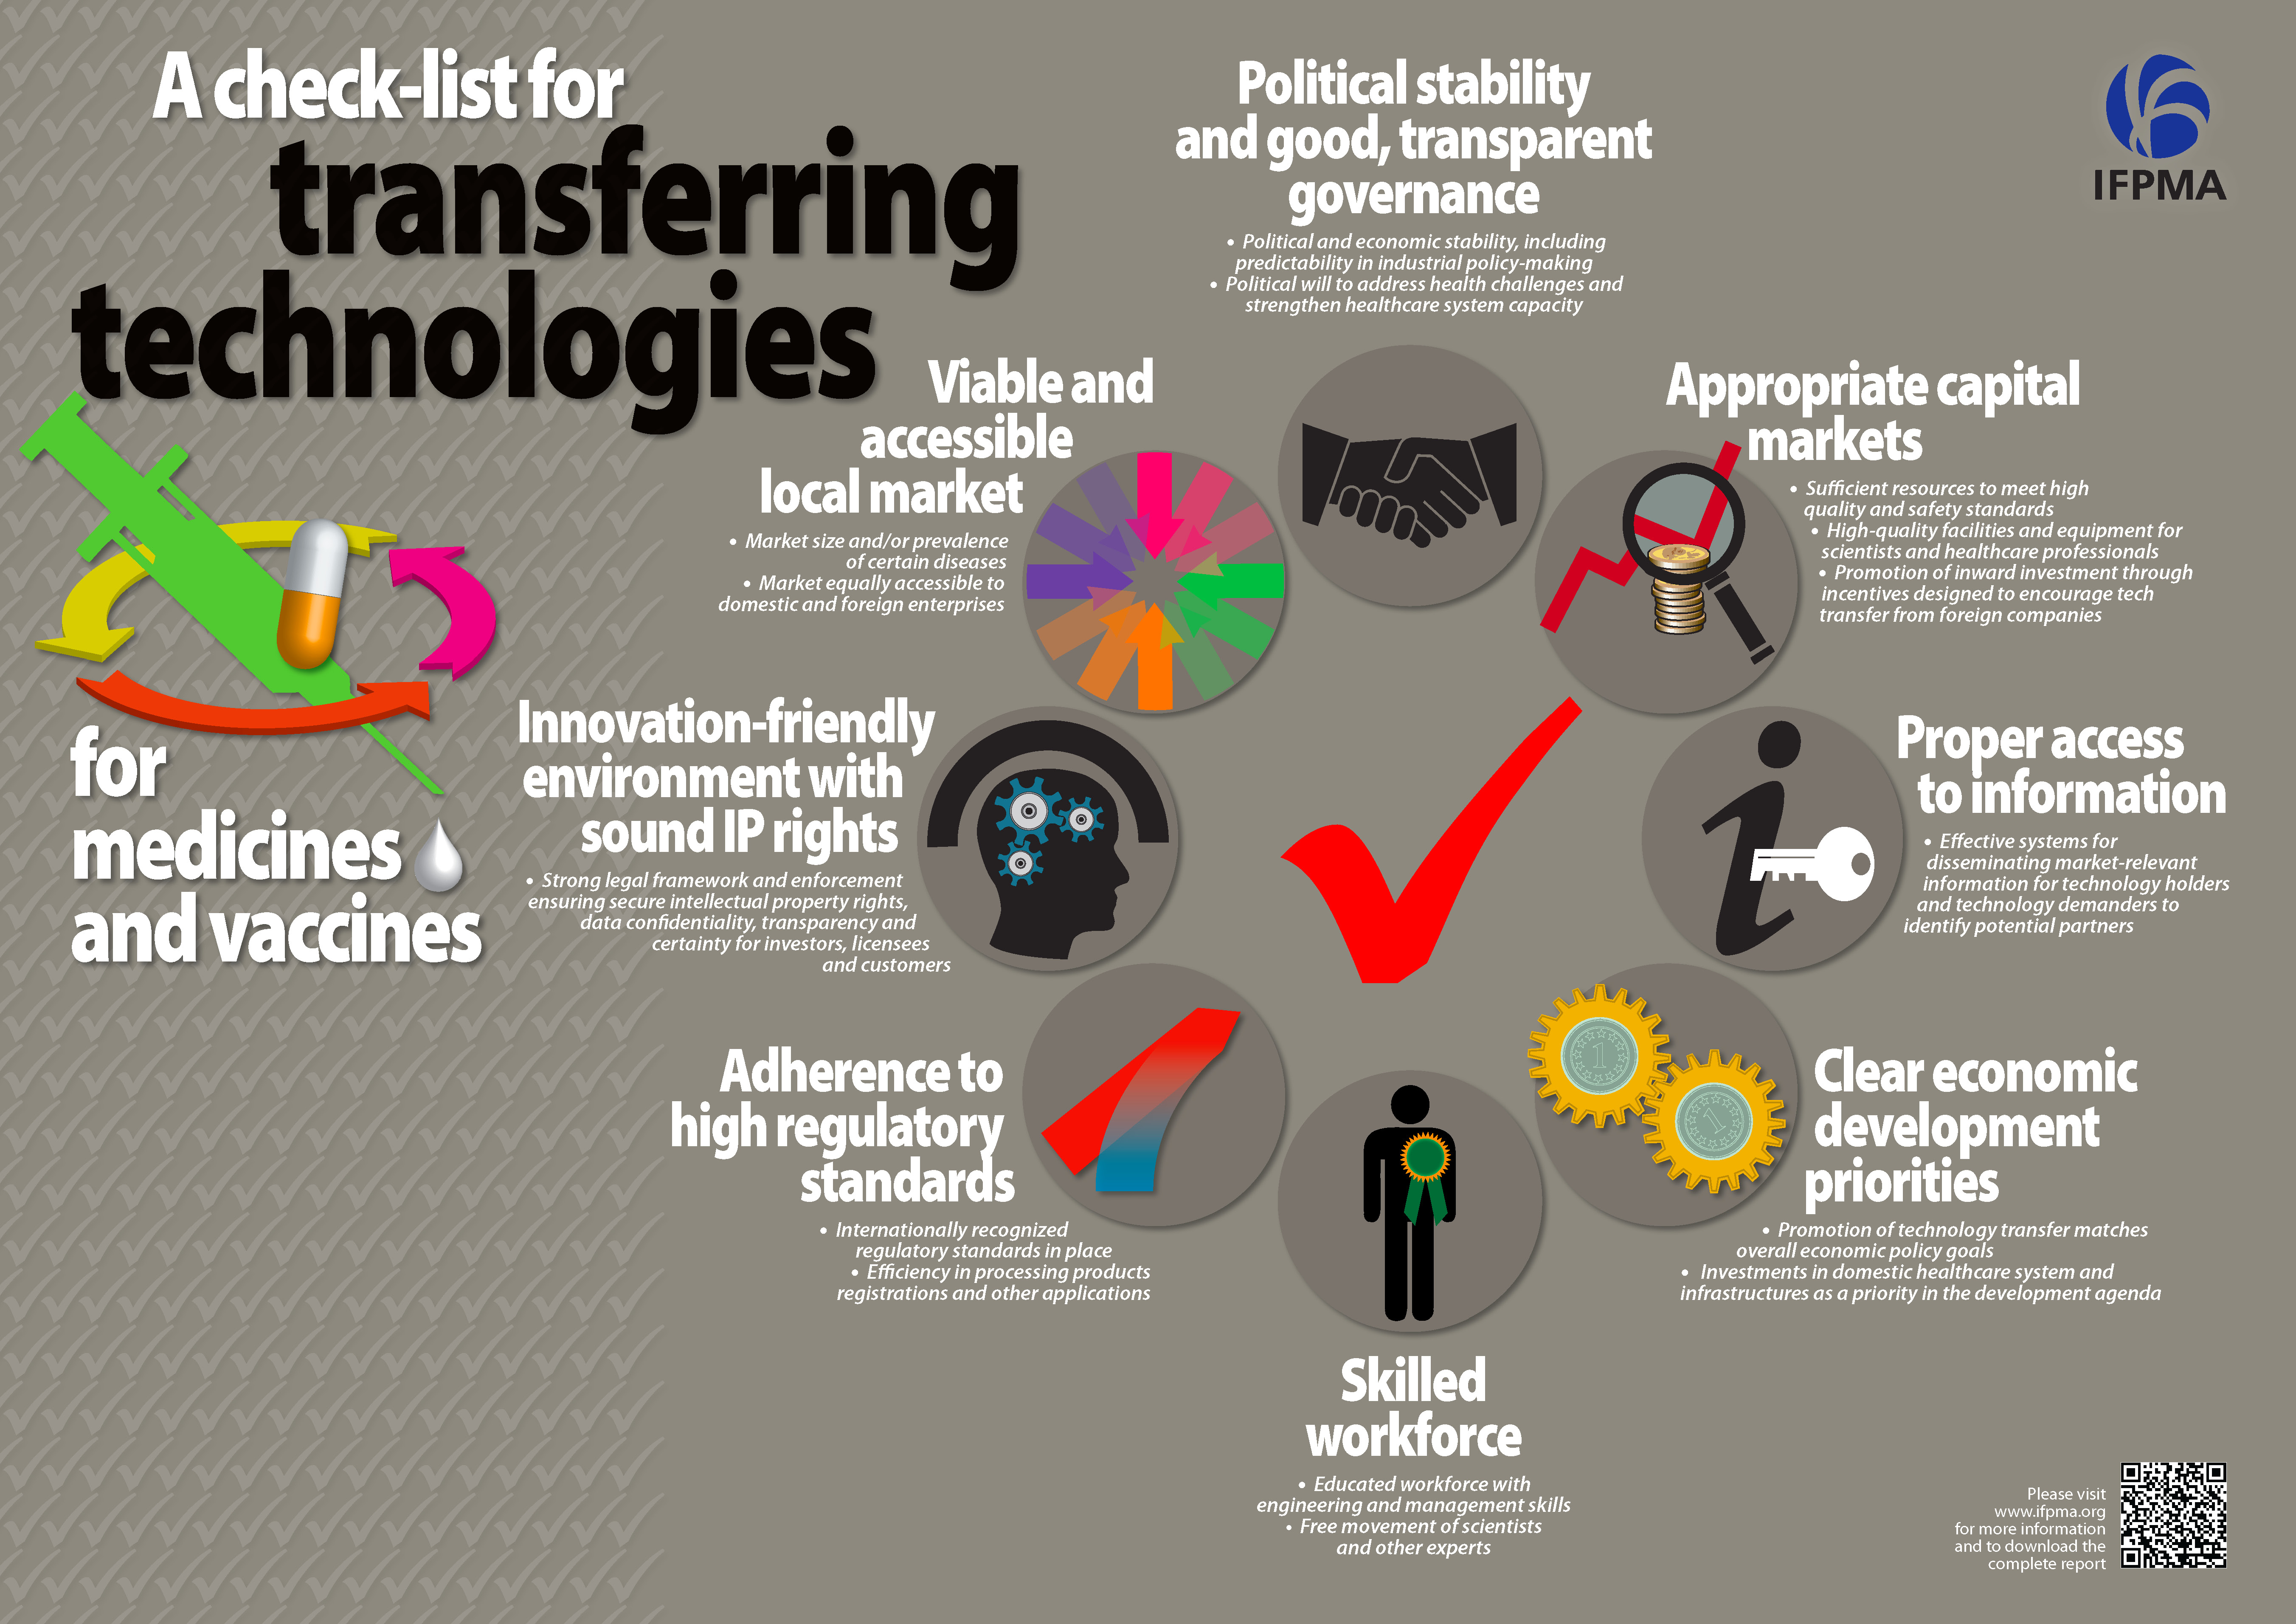 A check-list for transferring technologies